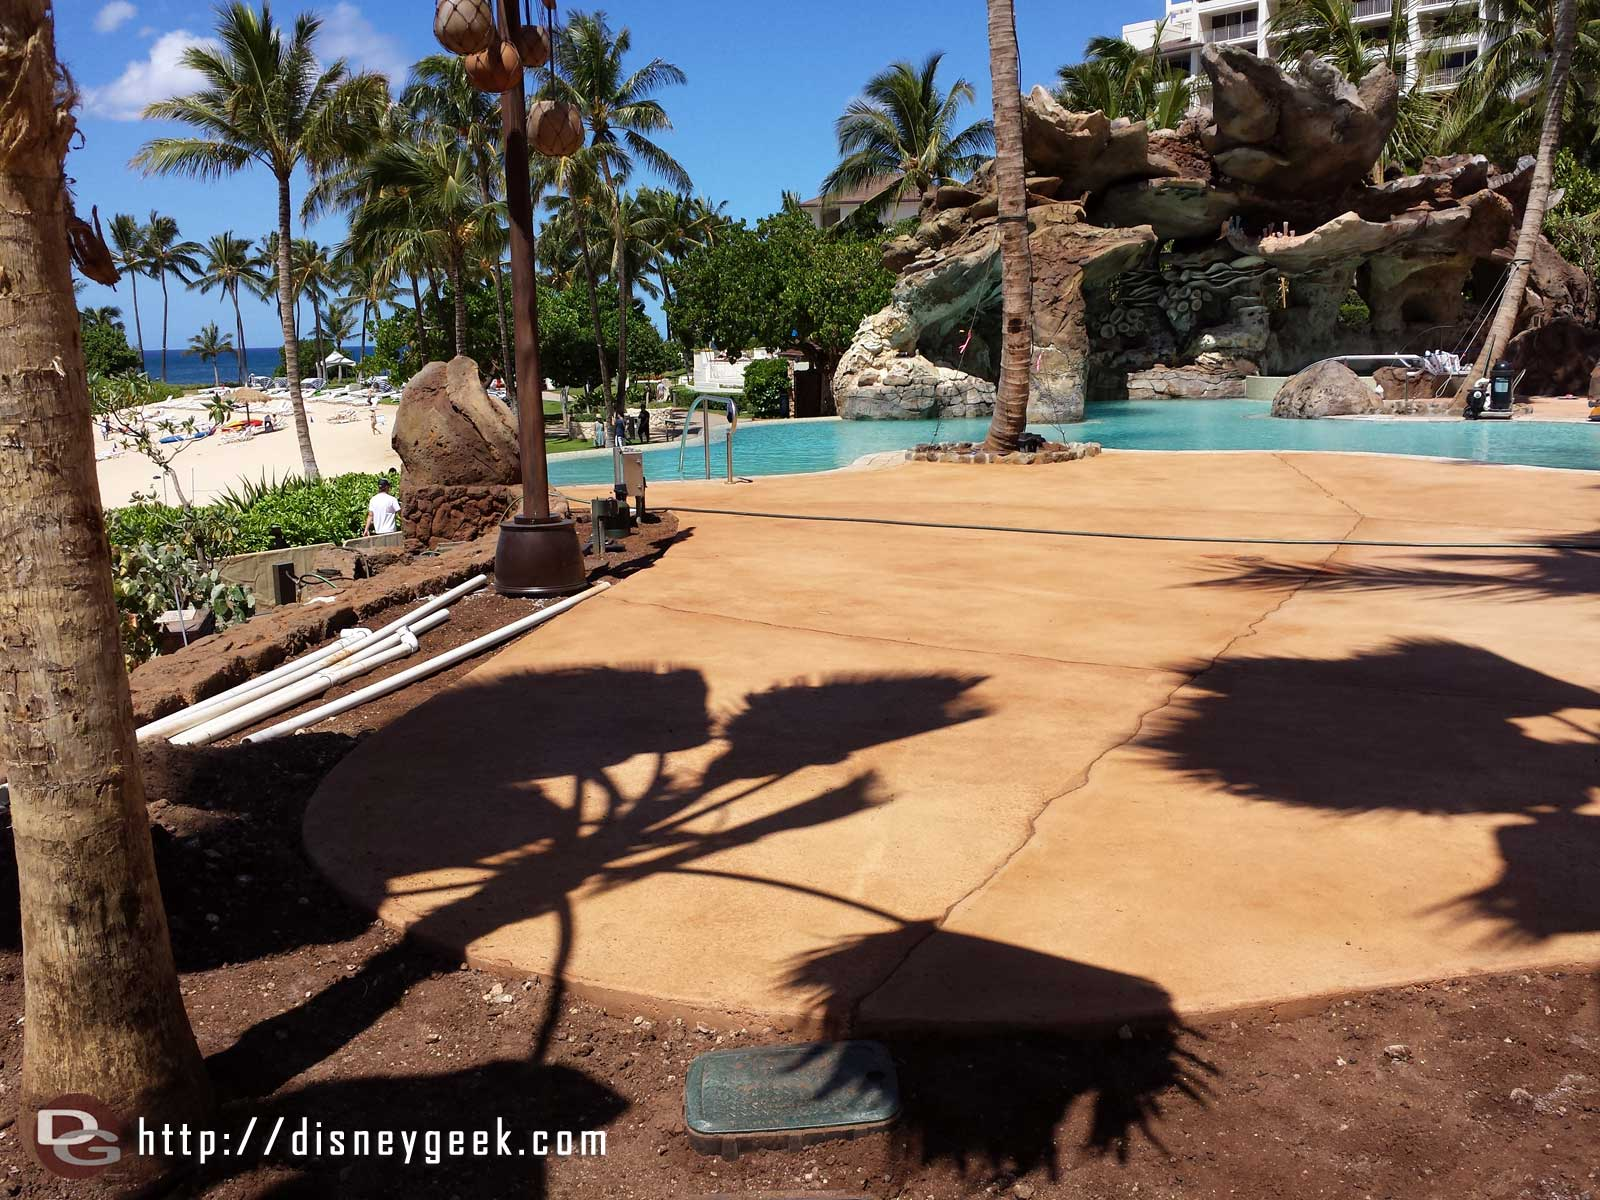 Panning a little left to the new pool area #Aulani